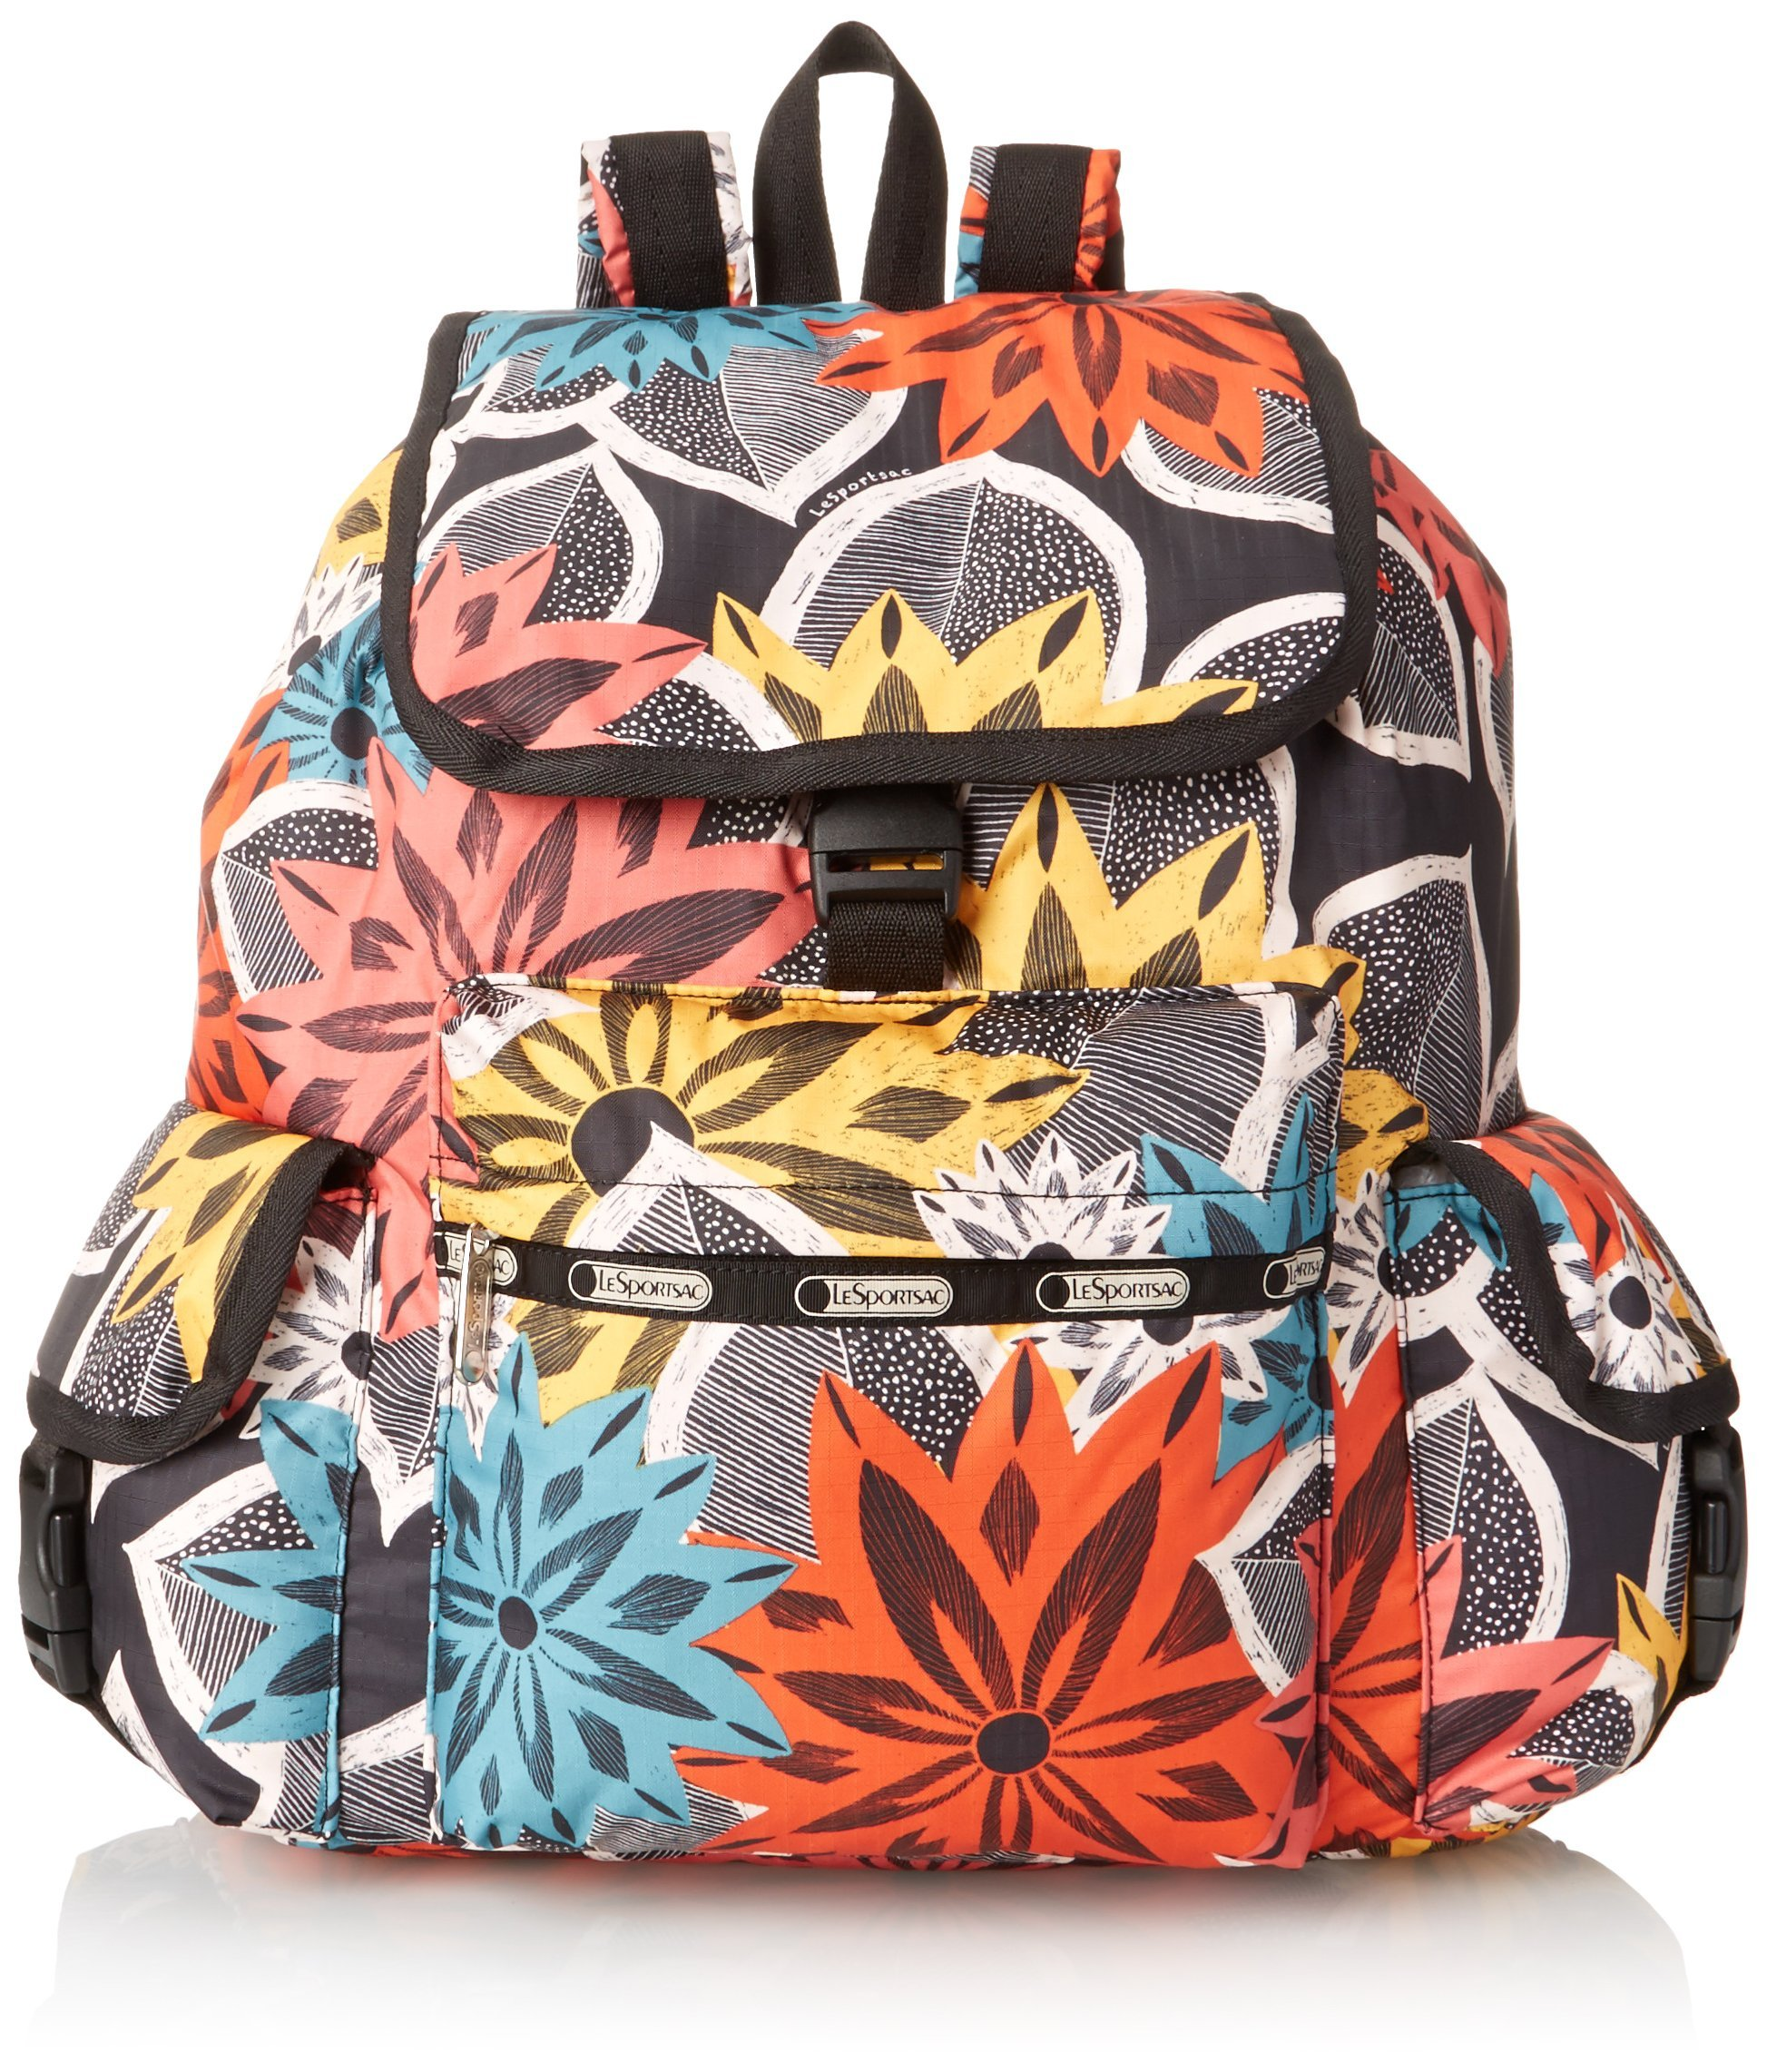 LeSportsac Voyager Backpack, Caraway Floral, One Size